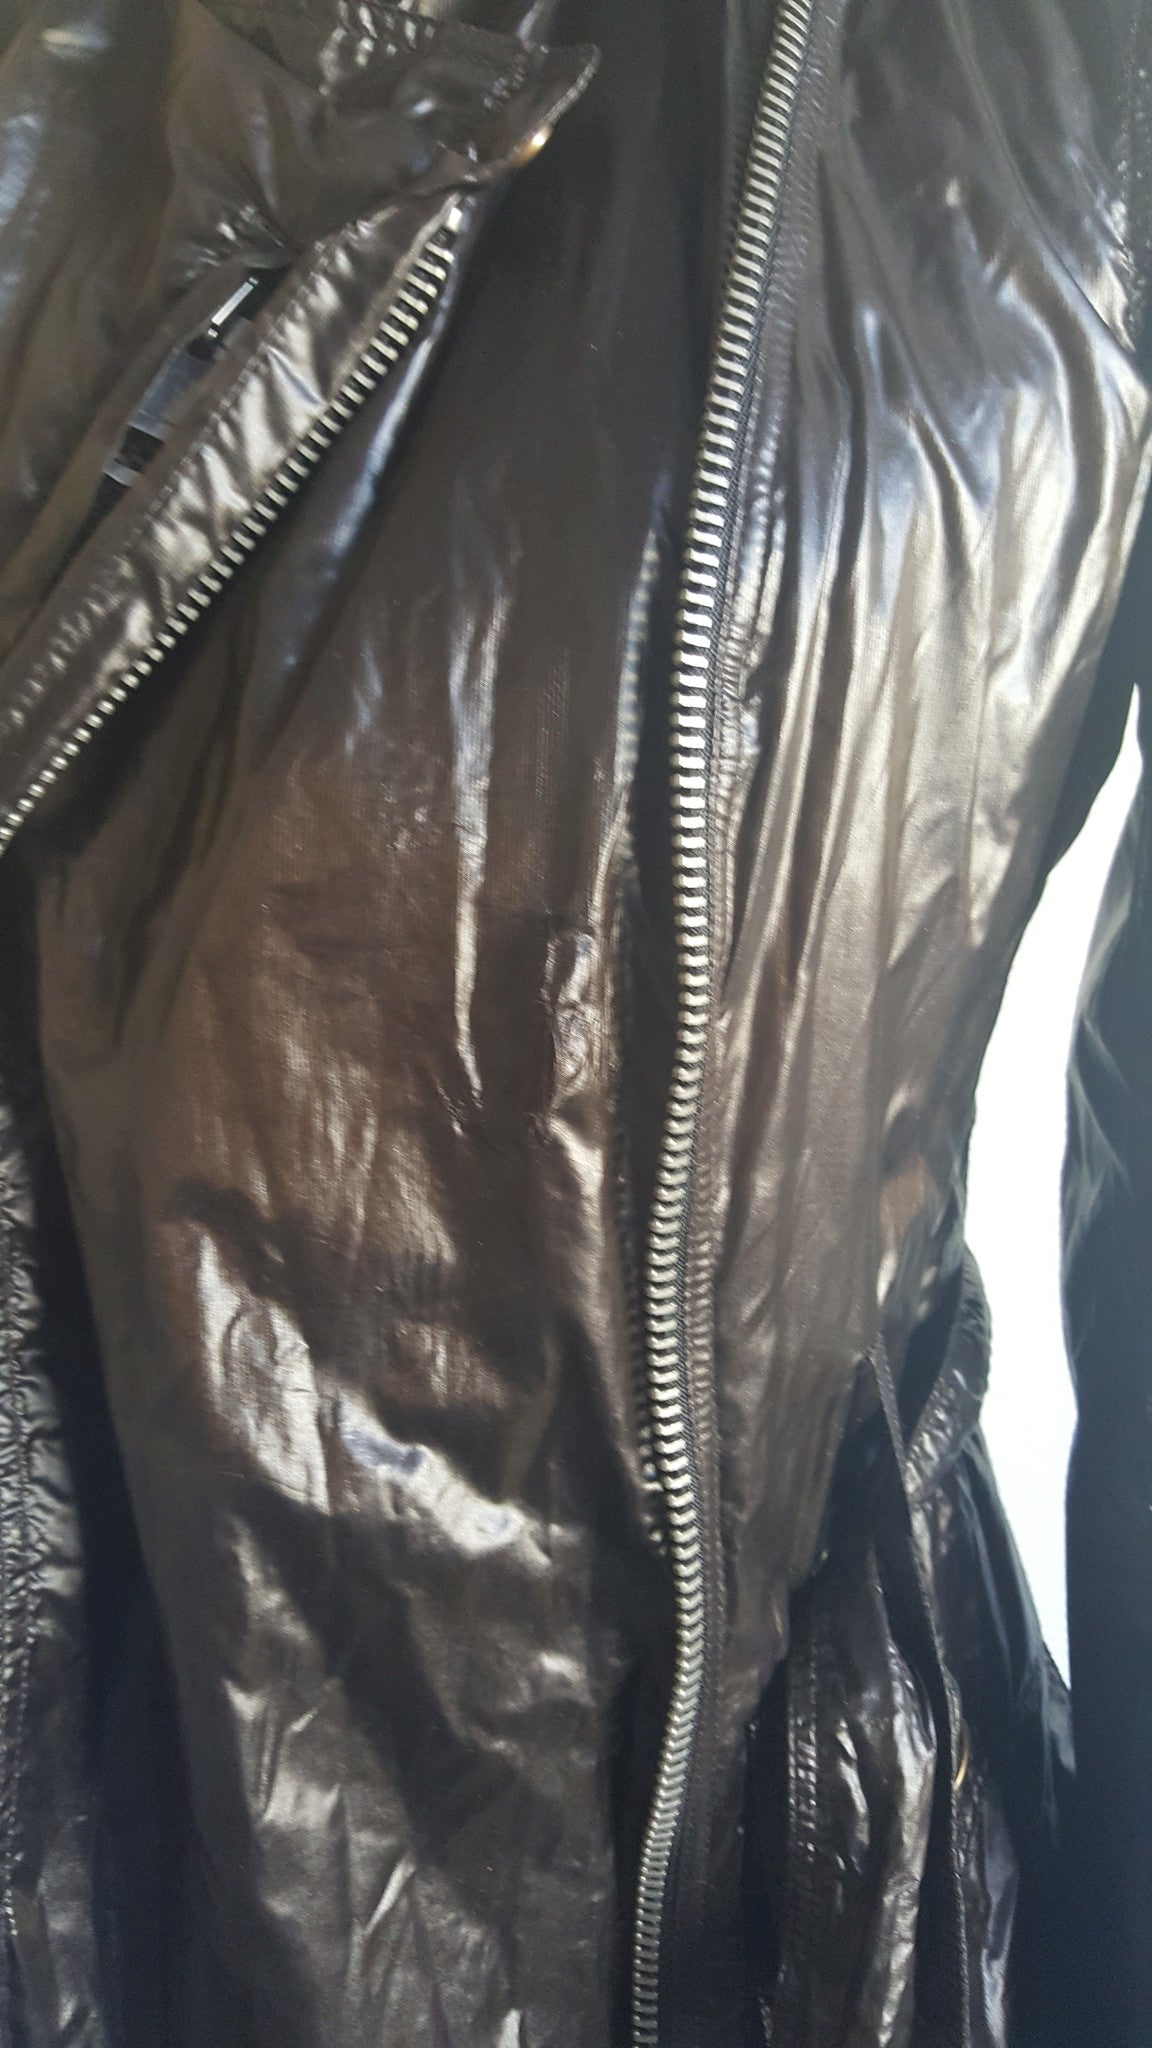 BURBERRY BRIT RAIN TRENCH COAT - SIZE US 6